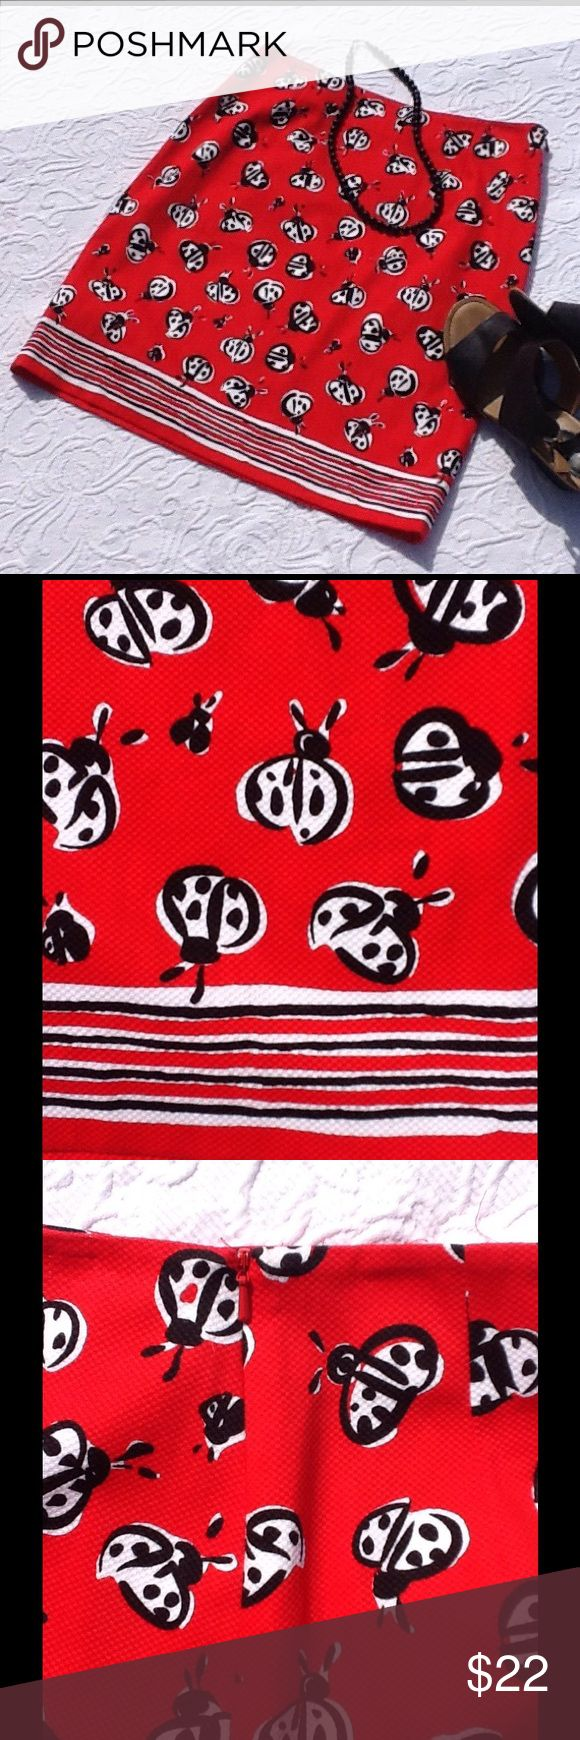 """Talbots ladybug skirt How cute is this? Red background with black & white ladybugs. Bottom stripes create a cute border. Hidden side zipper. 97% cotton, 3% spandex; machine wash cold. Pre-loved condition with no visible rips, stains, or tears. Approximate measurements: waist 30"""", length from waist to hem 20.5"""". Talbots Skirts"""